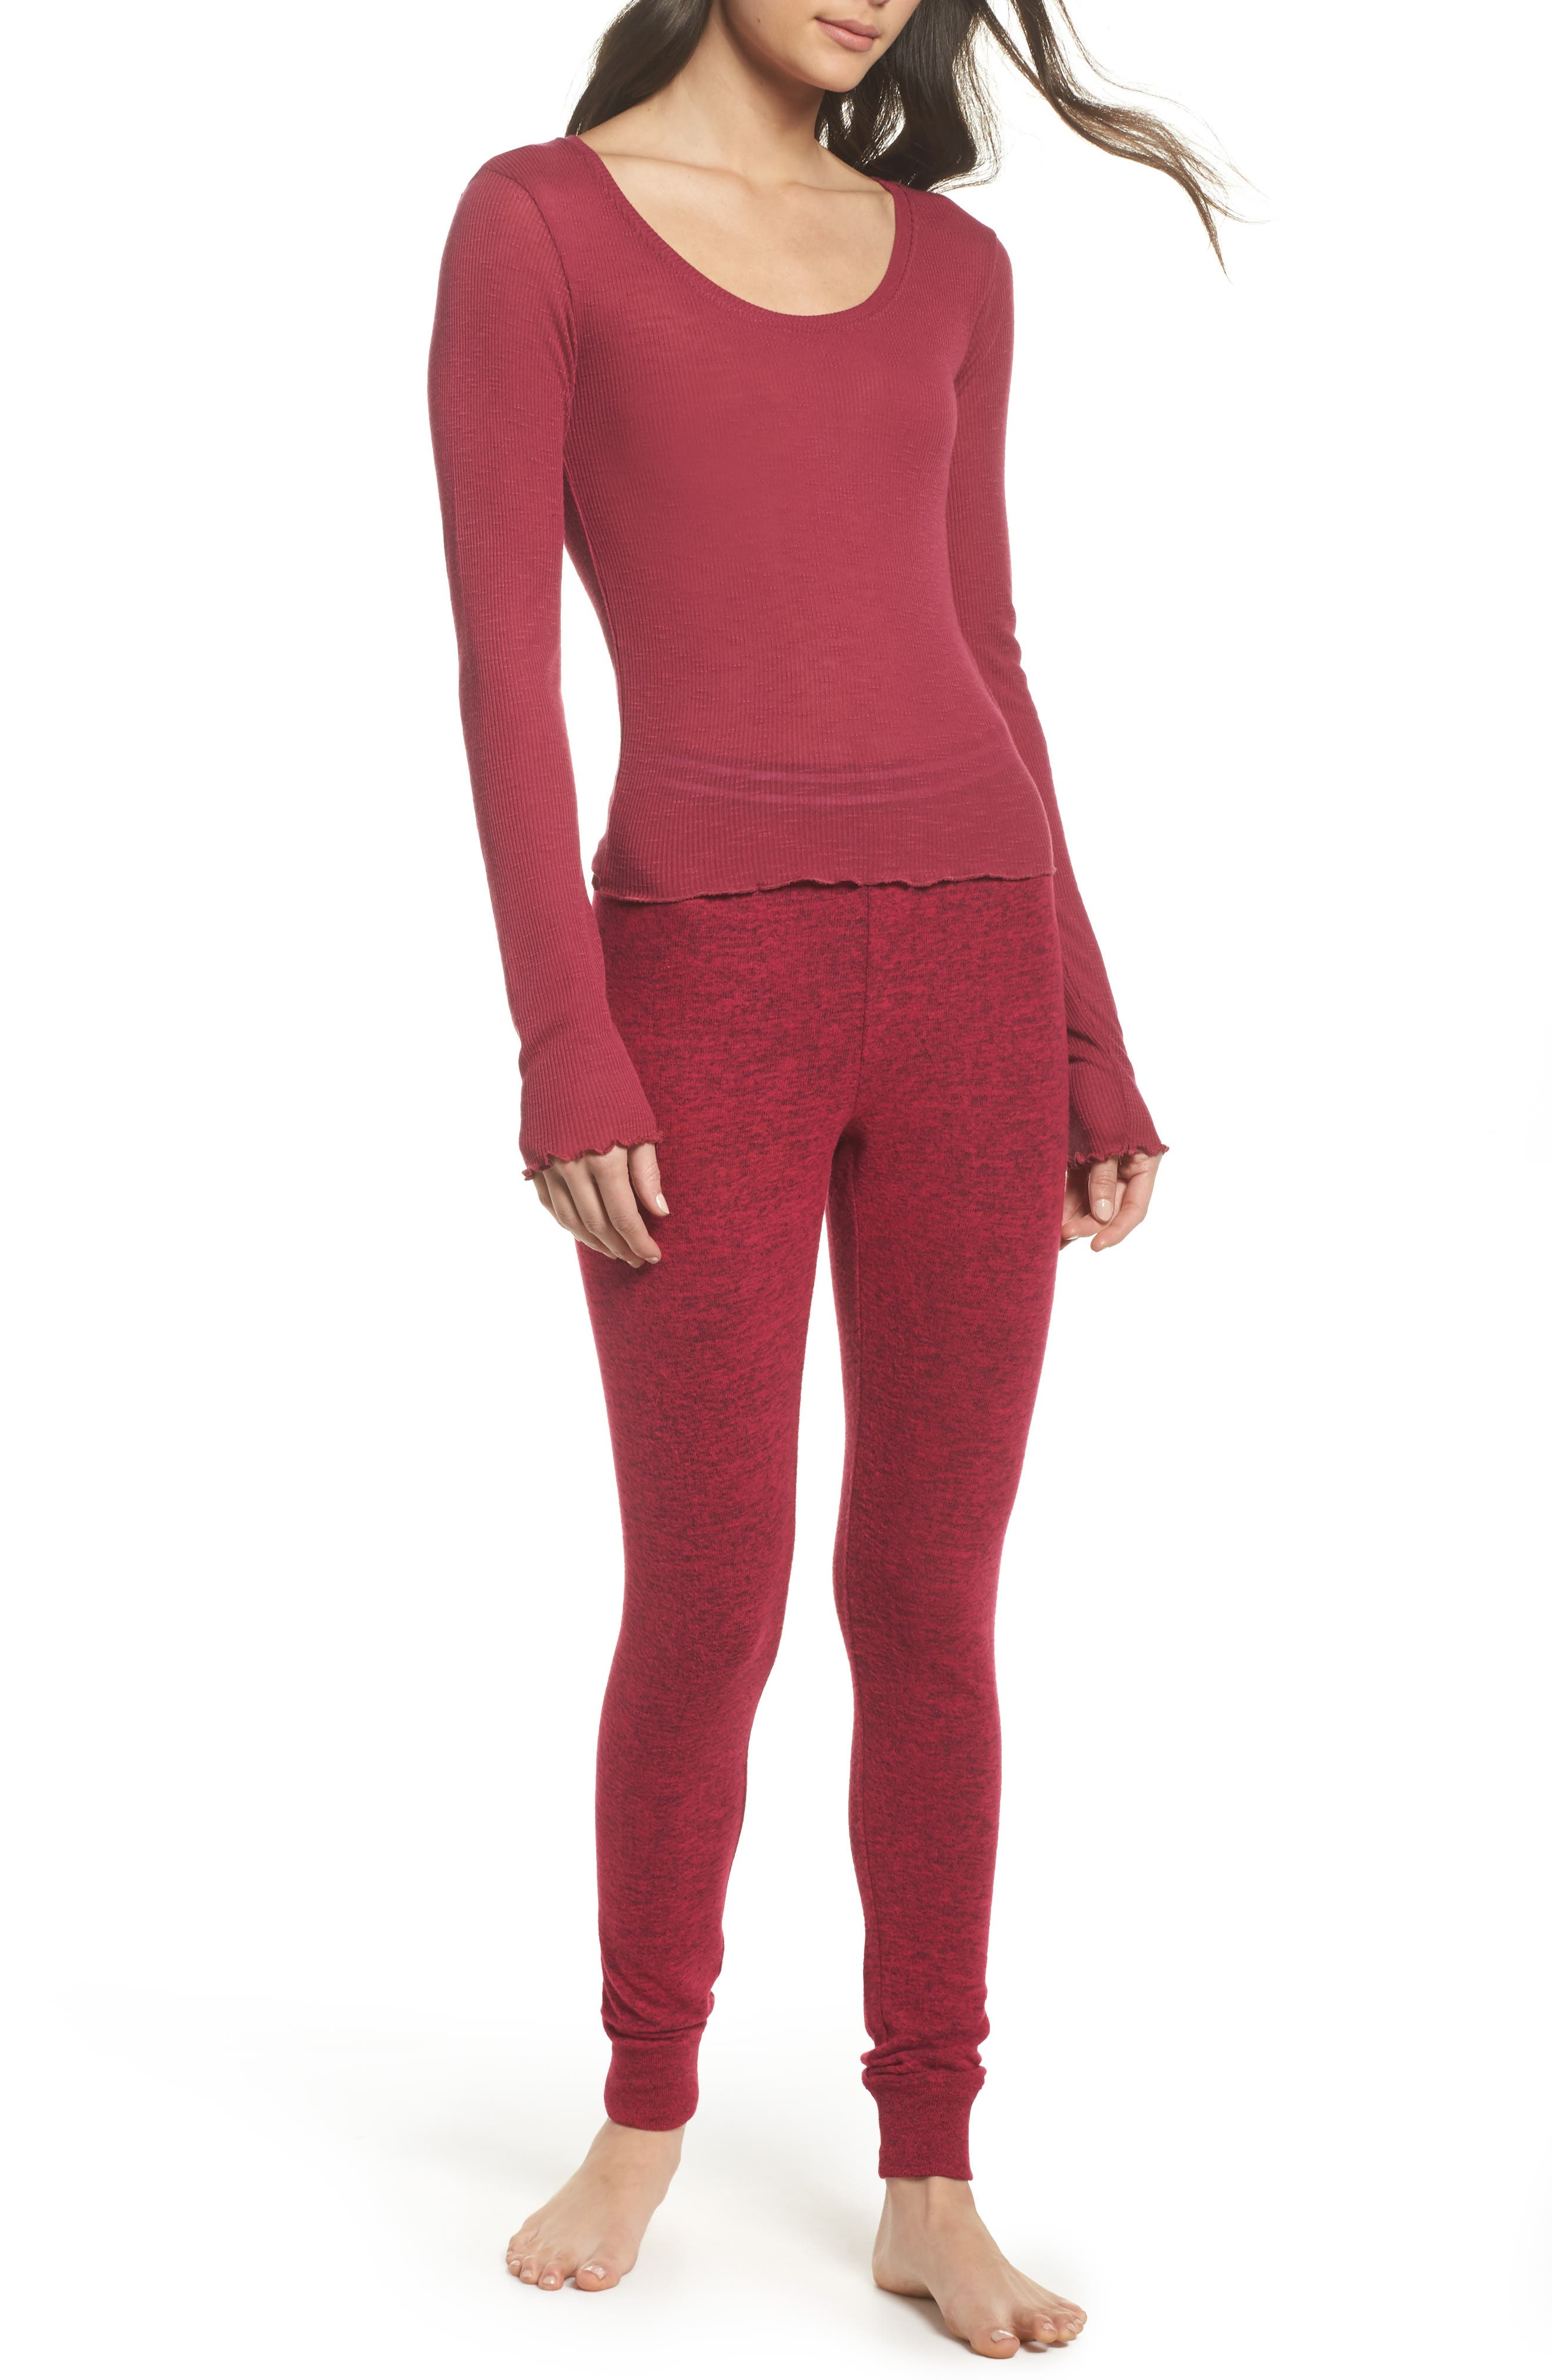 Cuddle Up Lounge Leggings,                             Alternate thumbnail 5, color,                             Pink Vivacious Marl